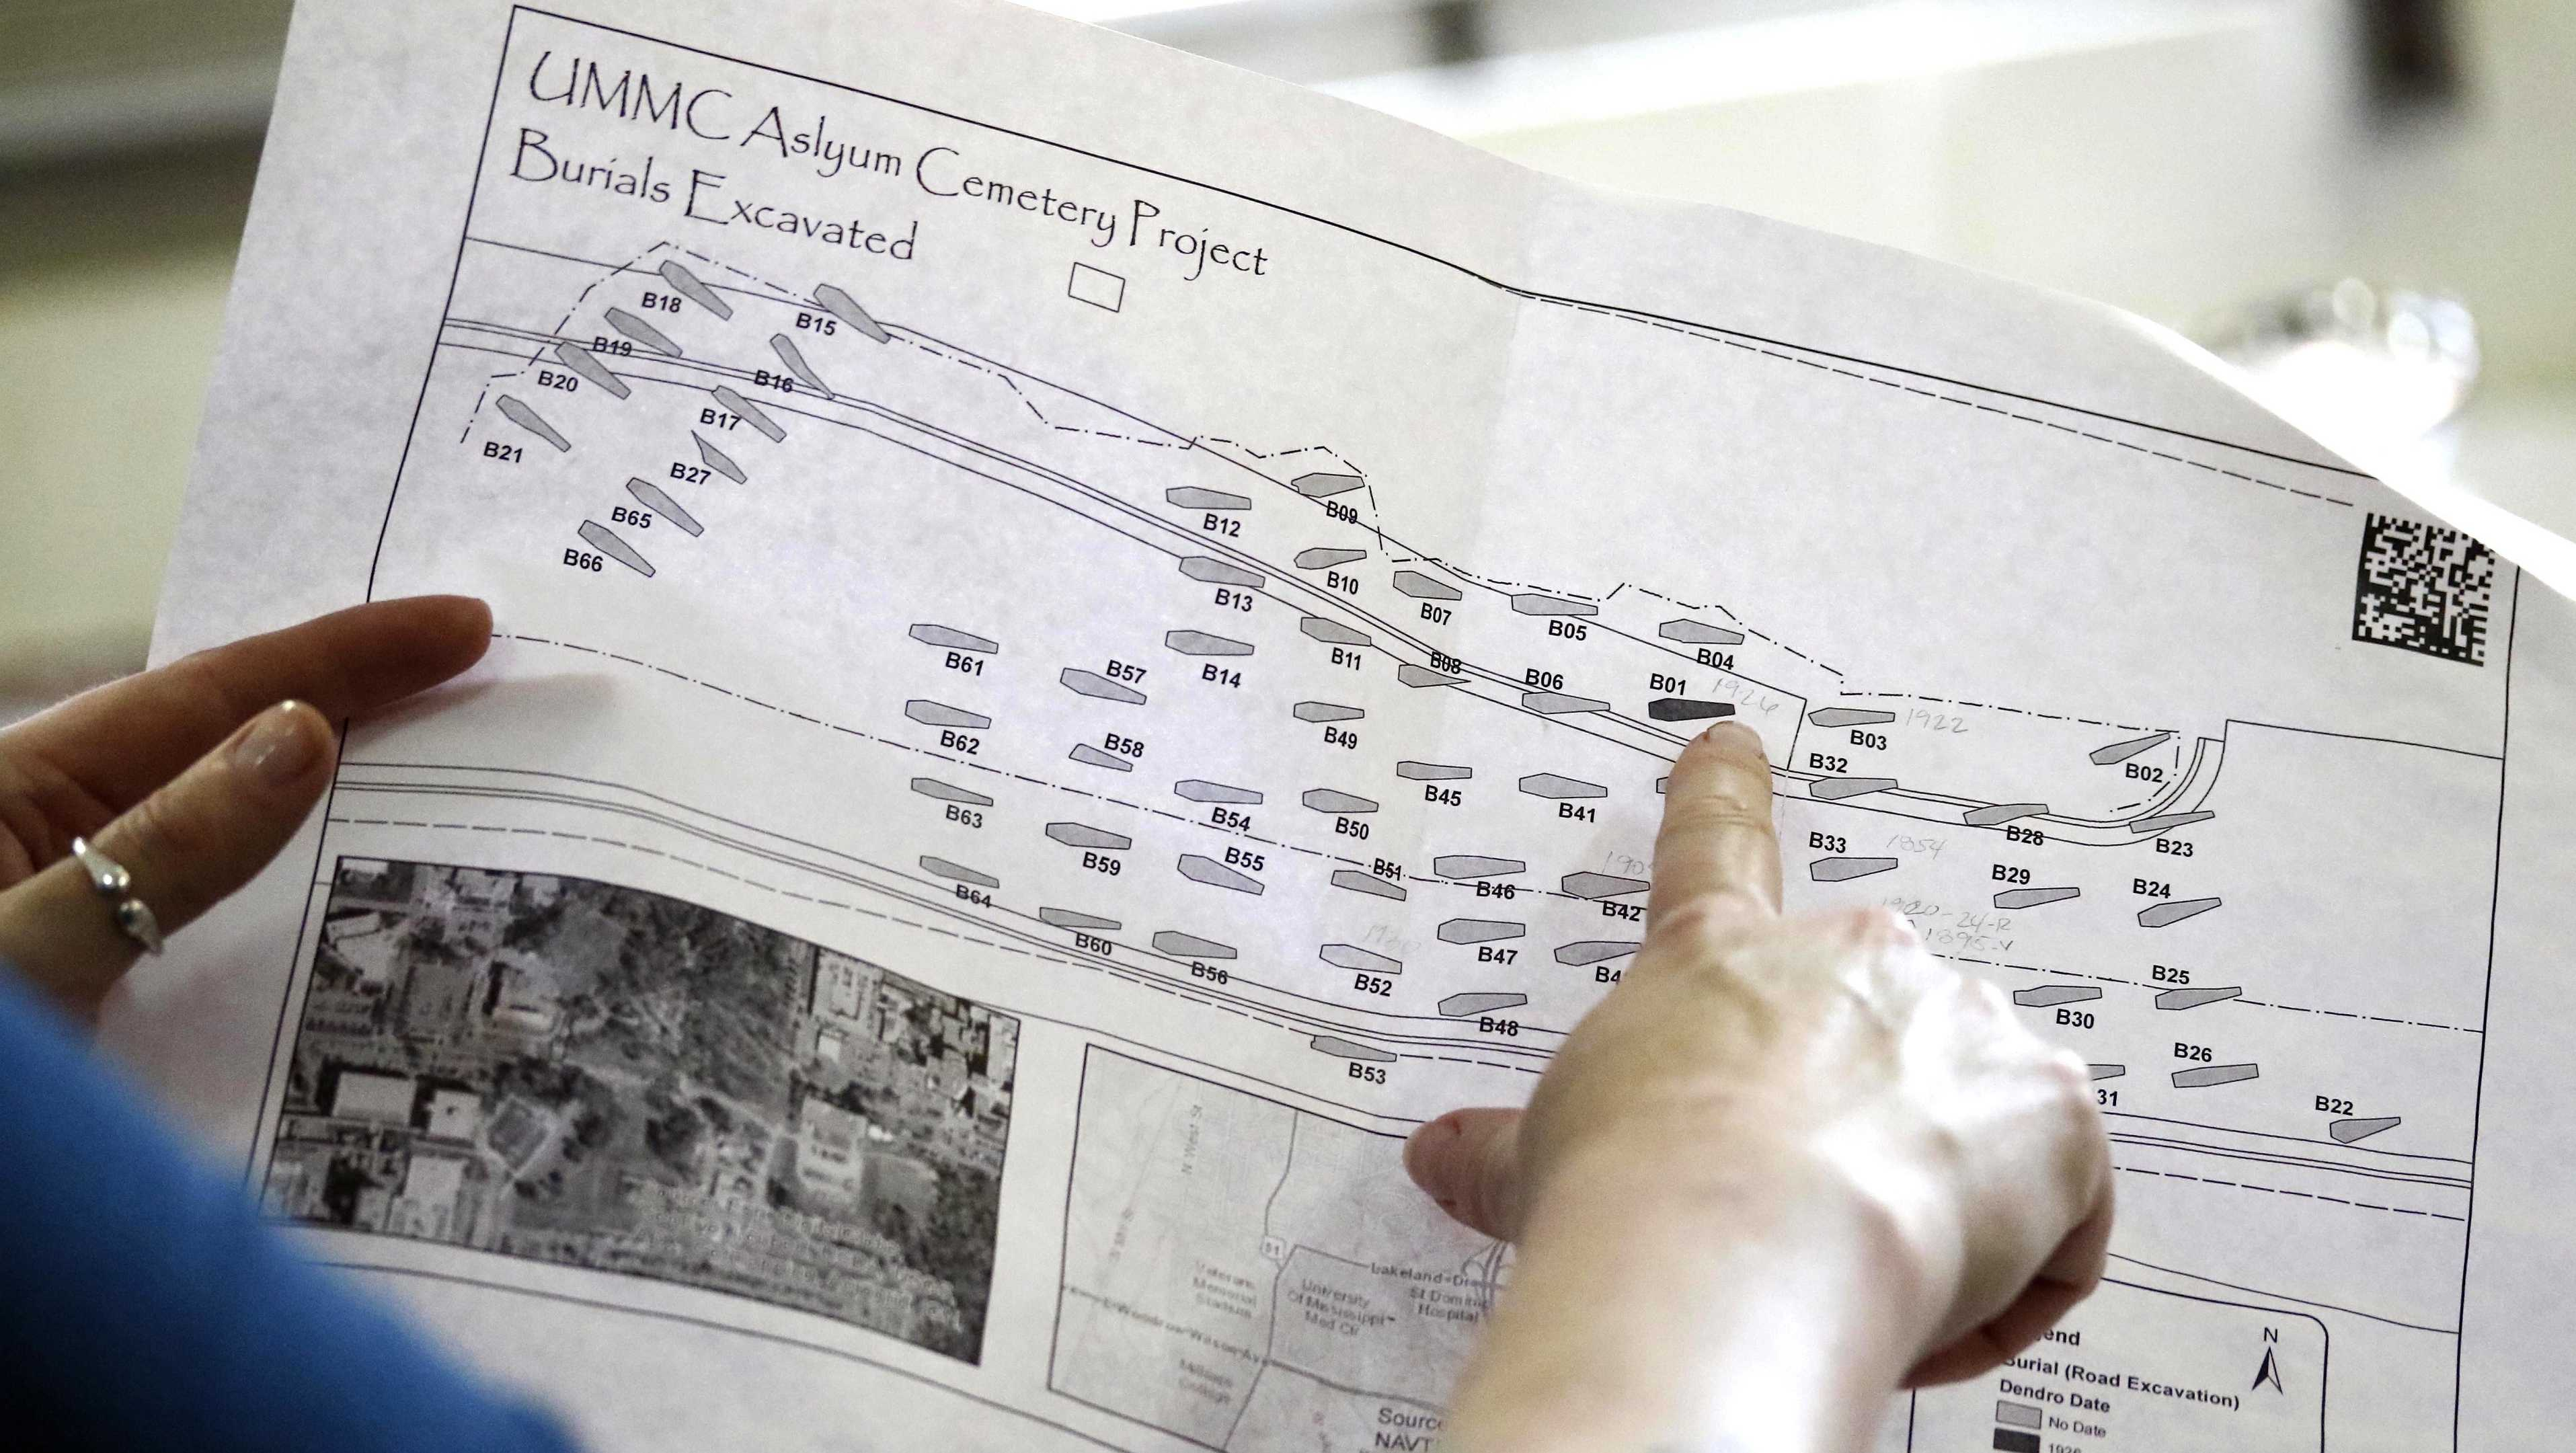 In this May 9, 2018 photo taken in Starkville, Miss., Mississippi State University anthropologist Anna Osterholtz holds a map outlining the 66 unearthed graves at what was the graveyard of the Mississippi State Asylum in Jackson, Miss.